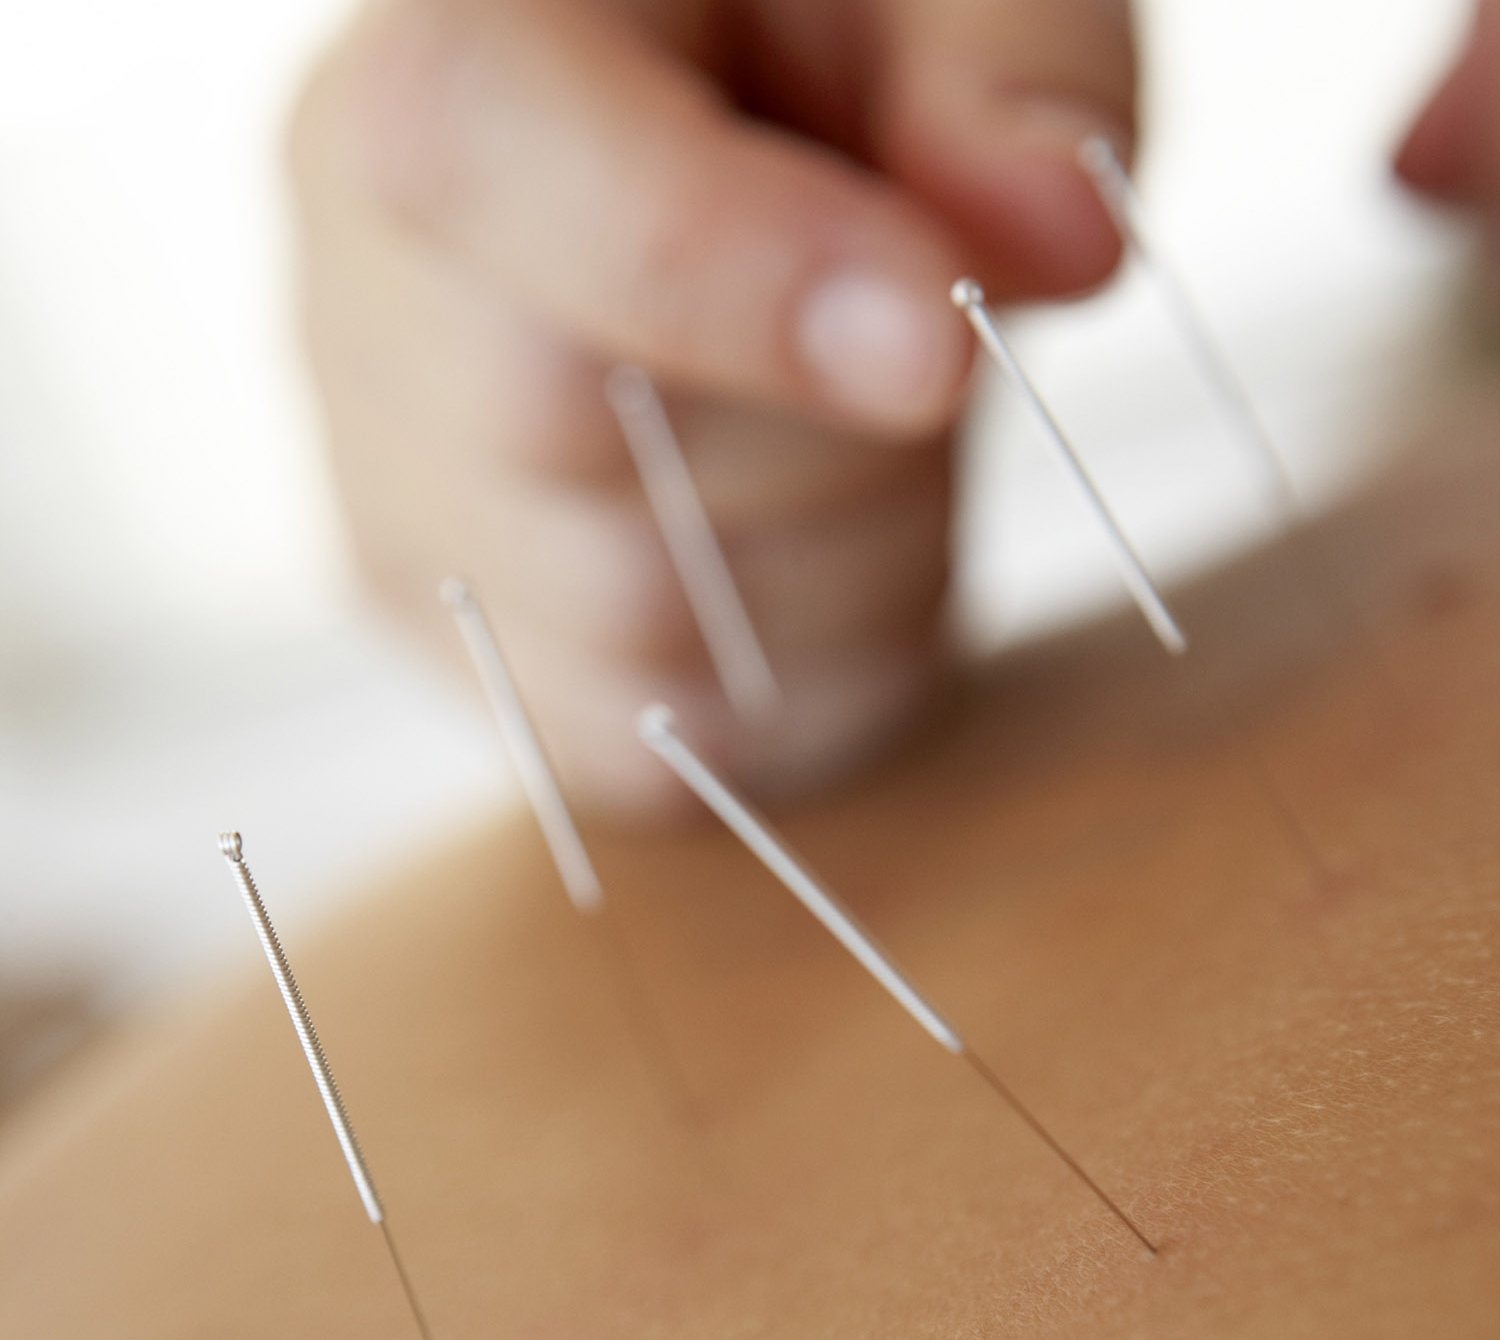 acupuncture needles for chronic pain